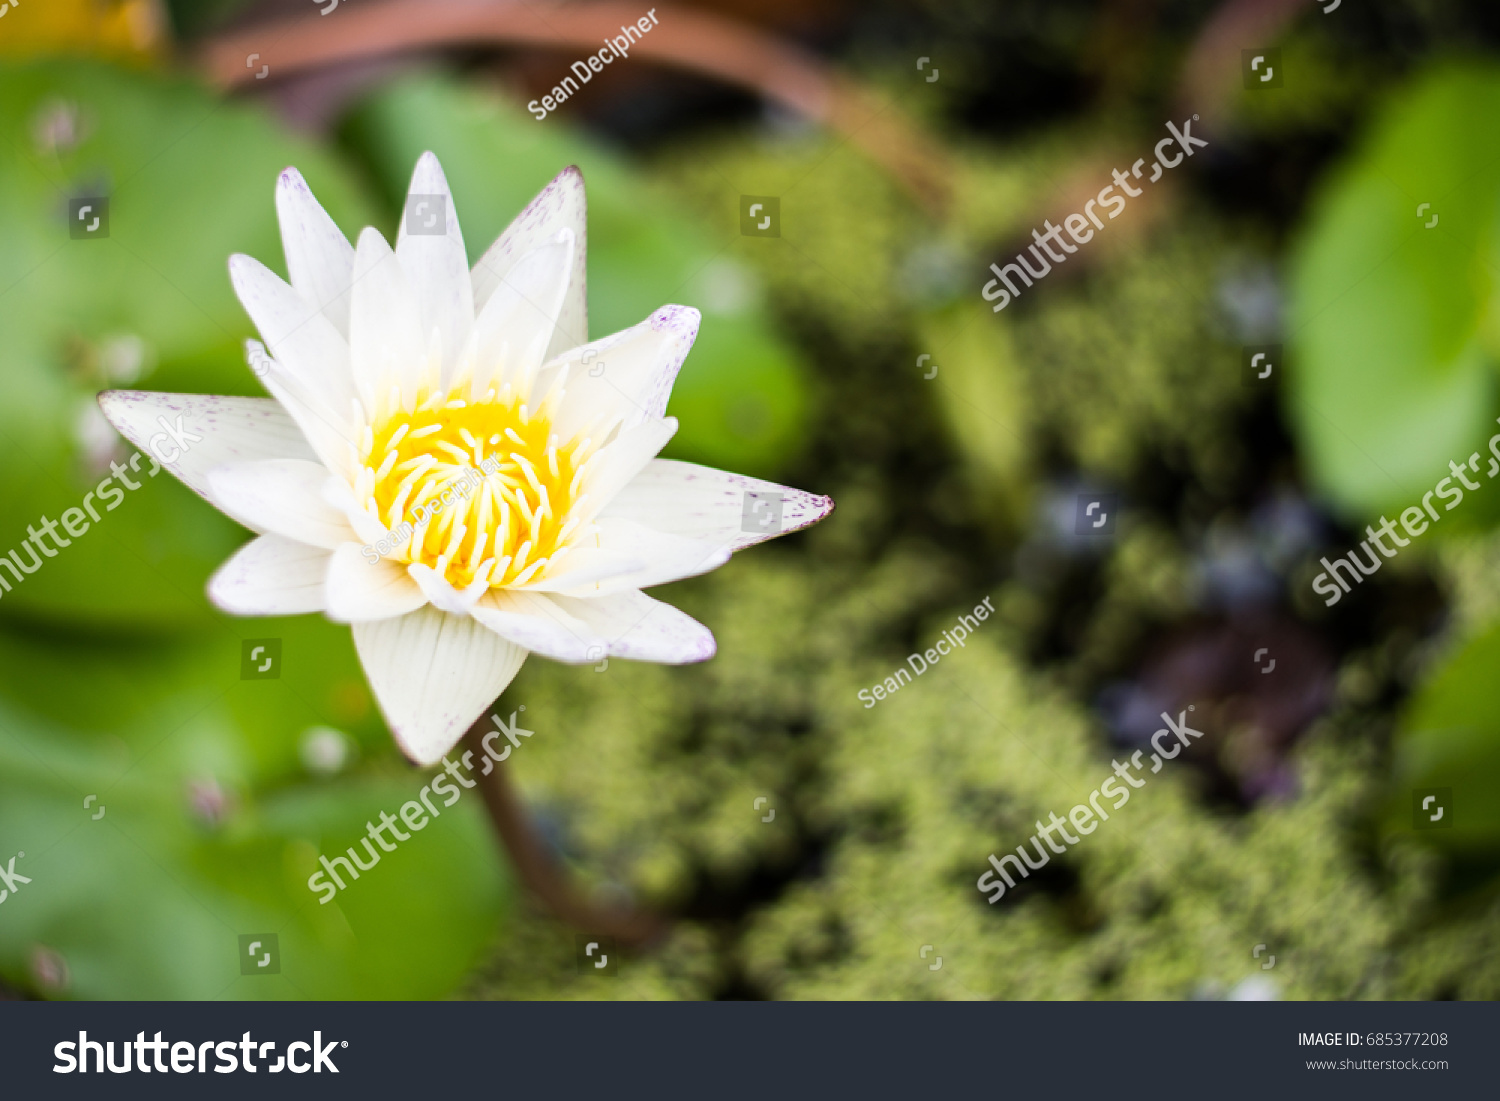 The meaning of a white lotus flower beautiful flower 2017 the meaning of lotus flower and why i chose it as my logo izmirmasajfo